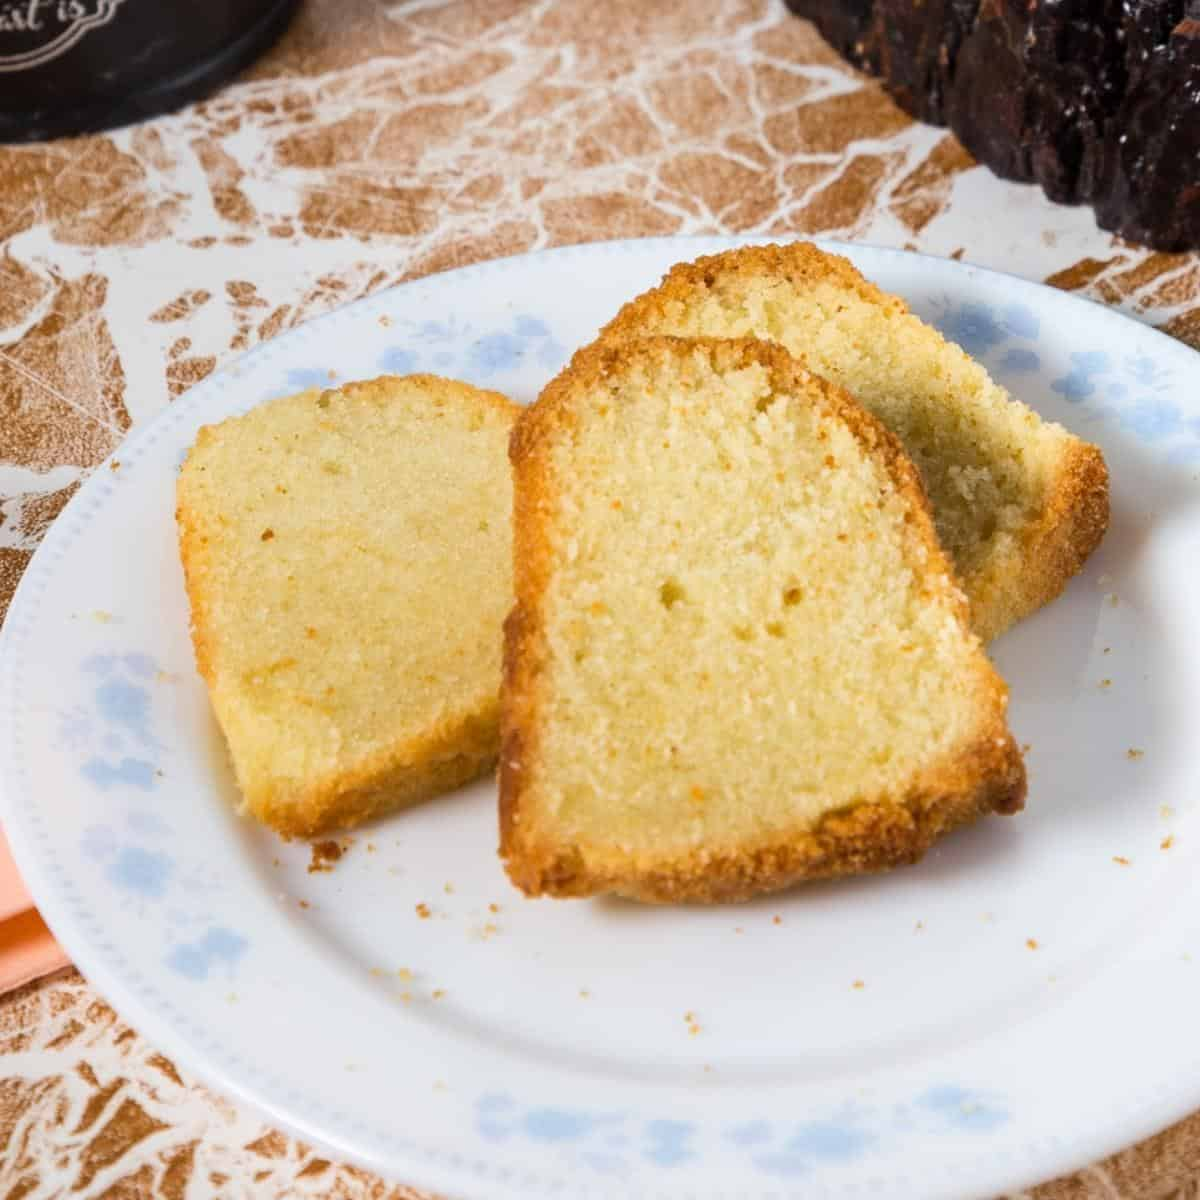 Three slices of cut pound cake on a plate